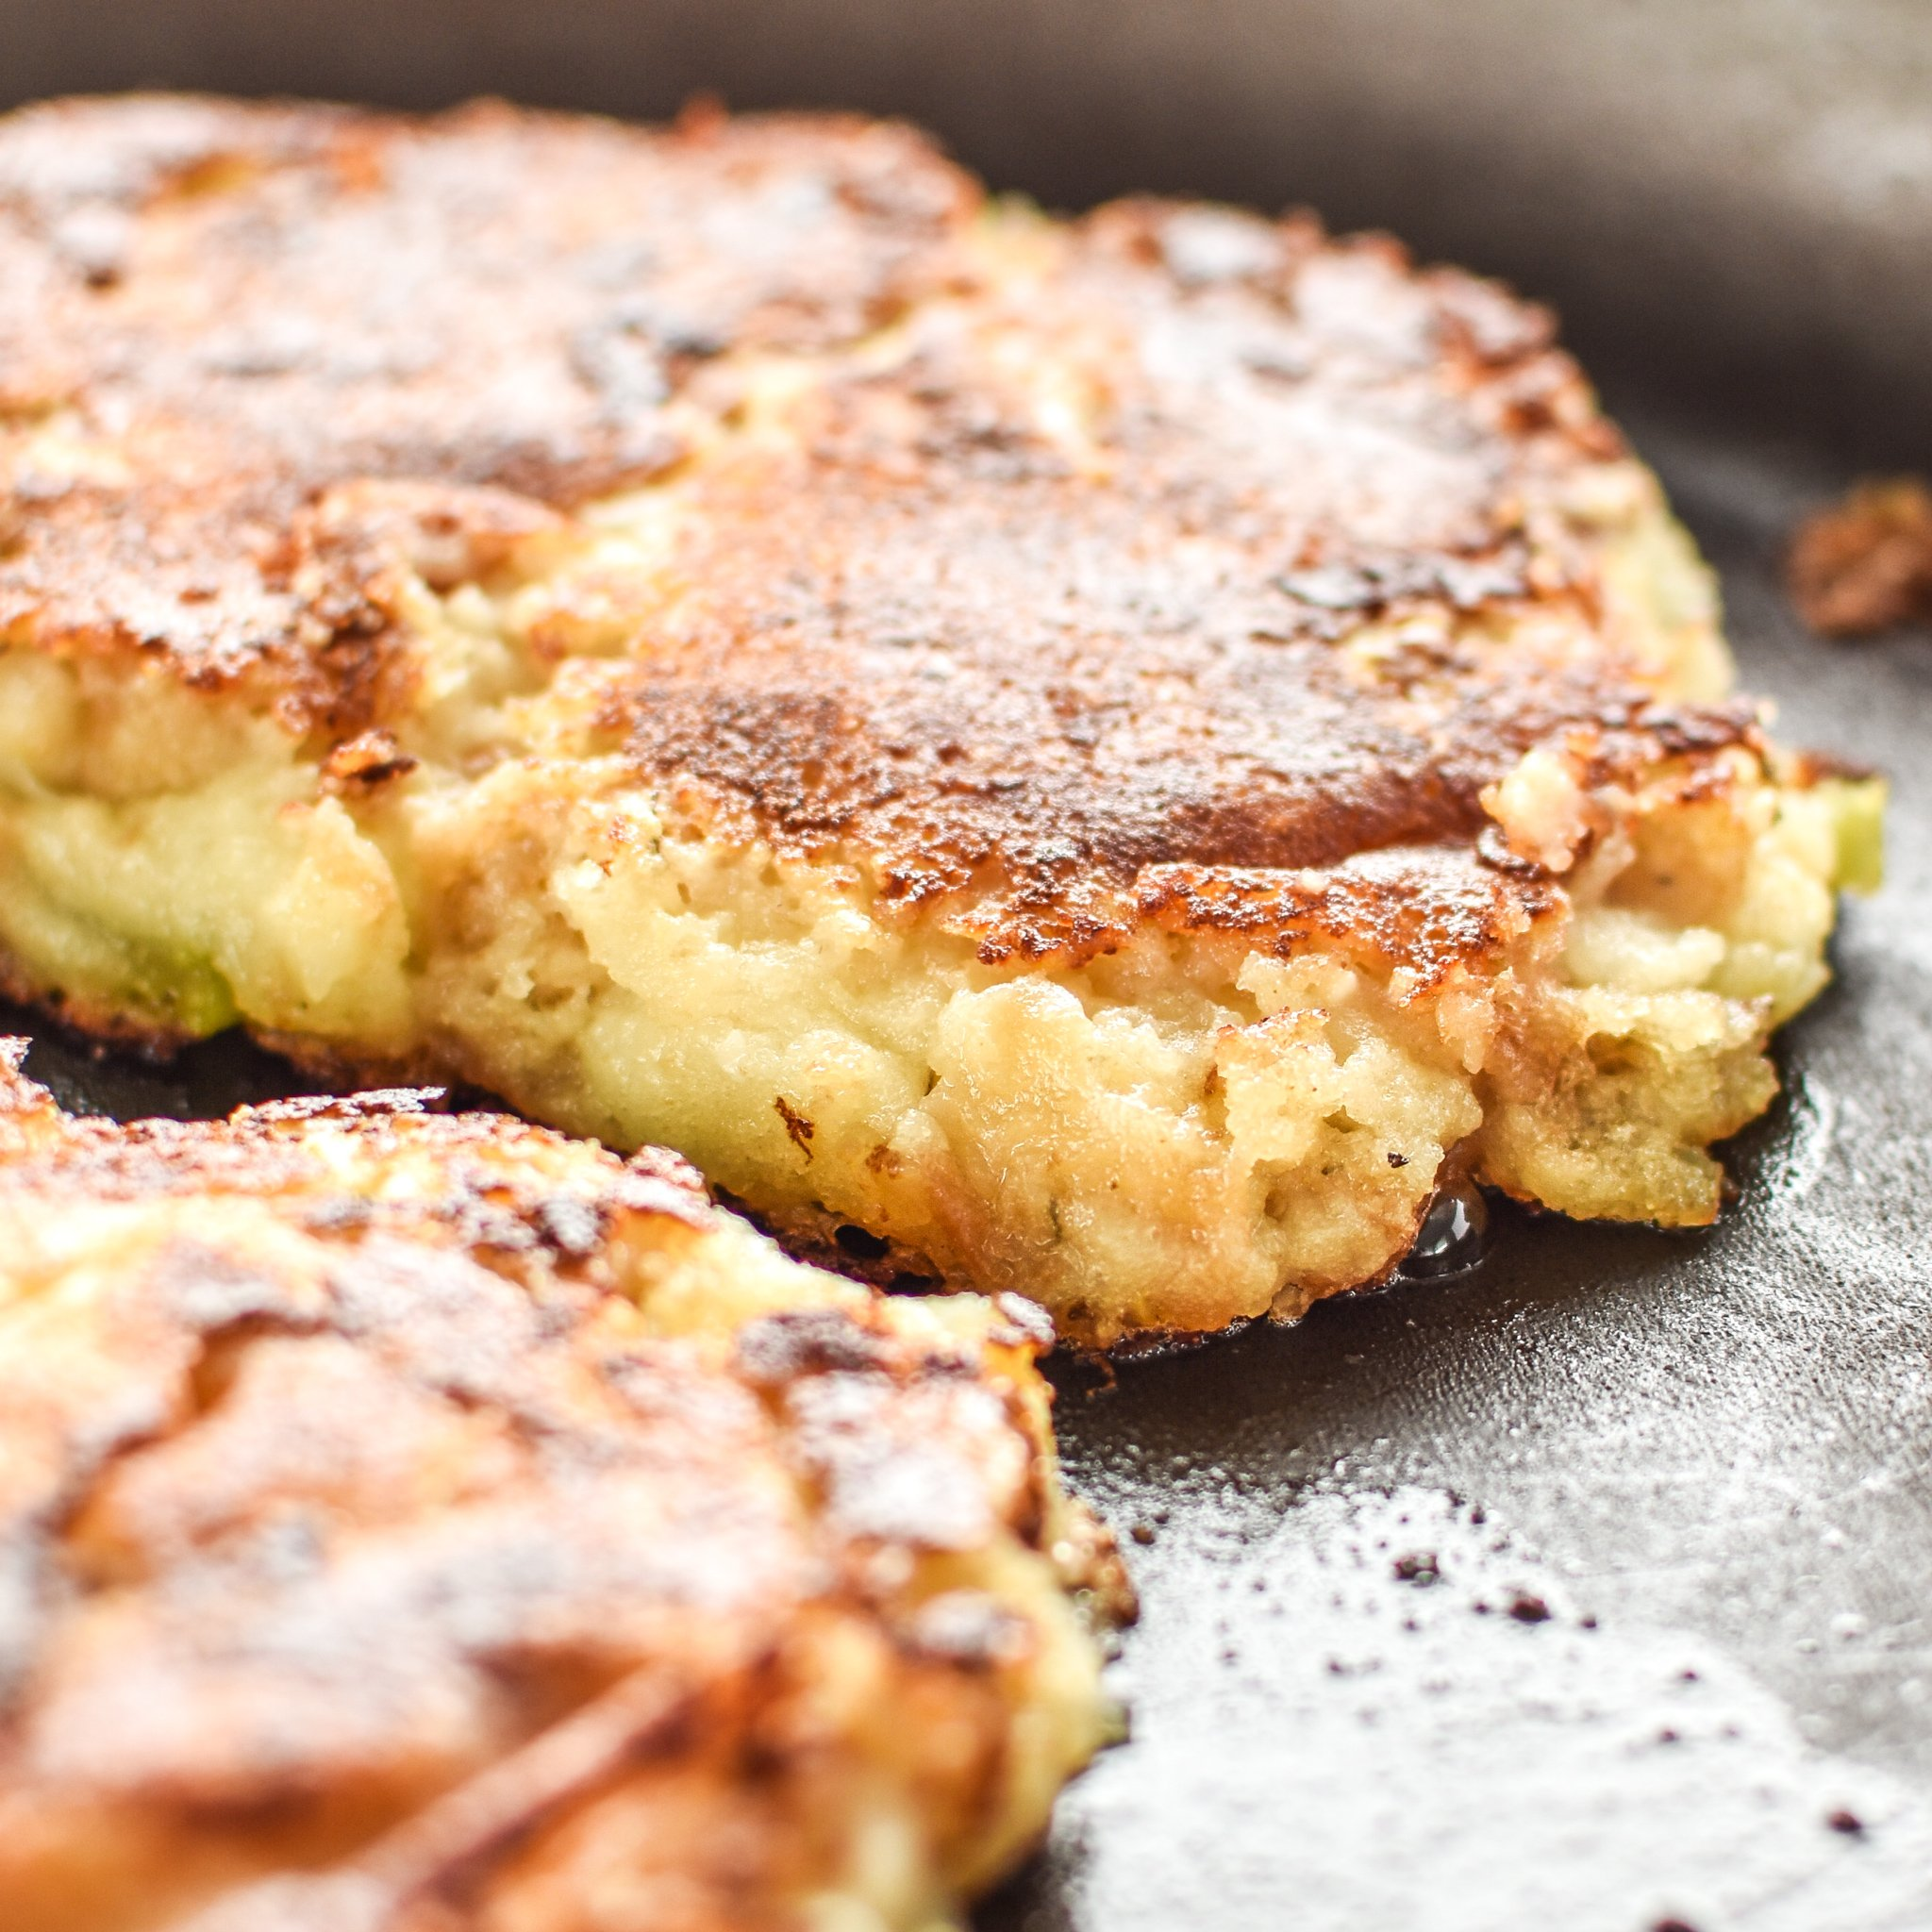 Mashed potato and stuffing pancakes in the frying pan